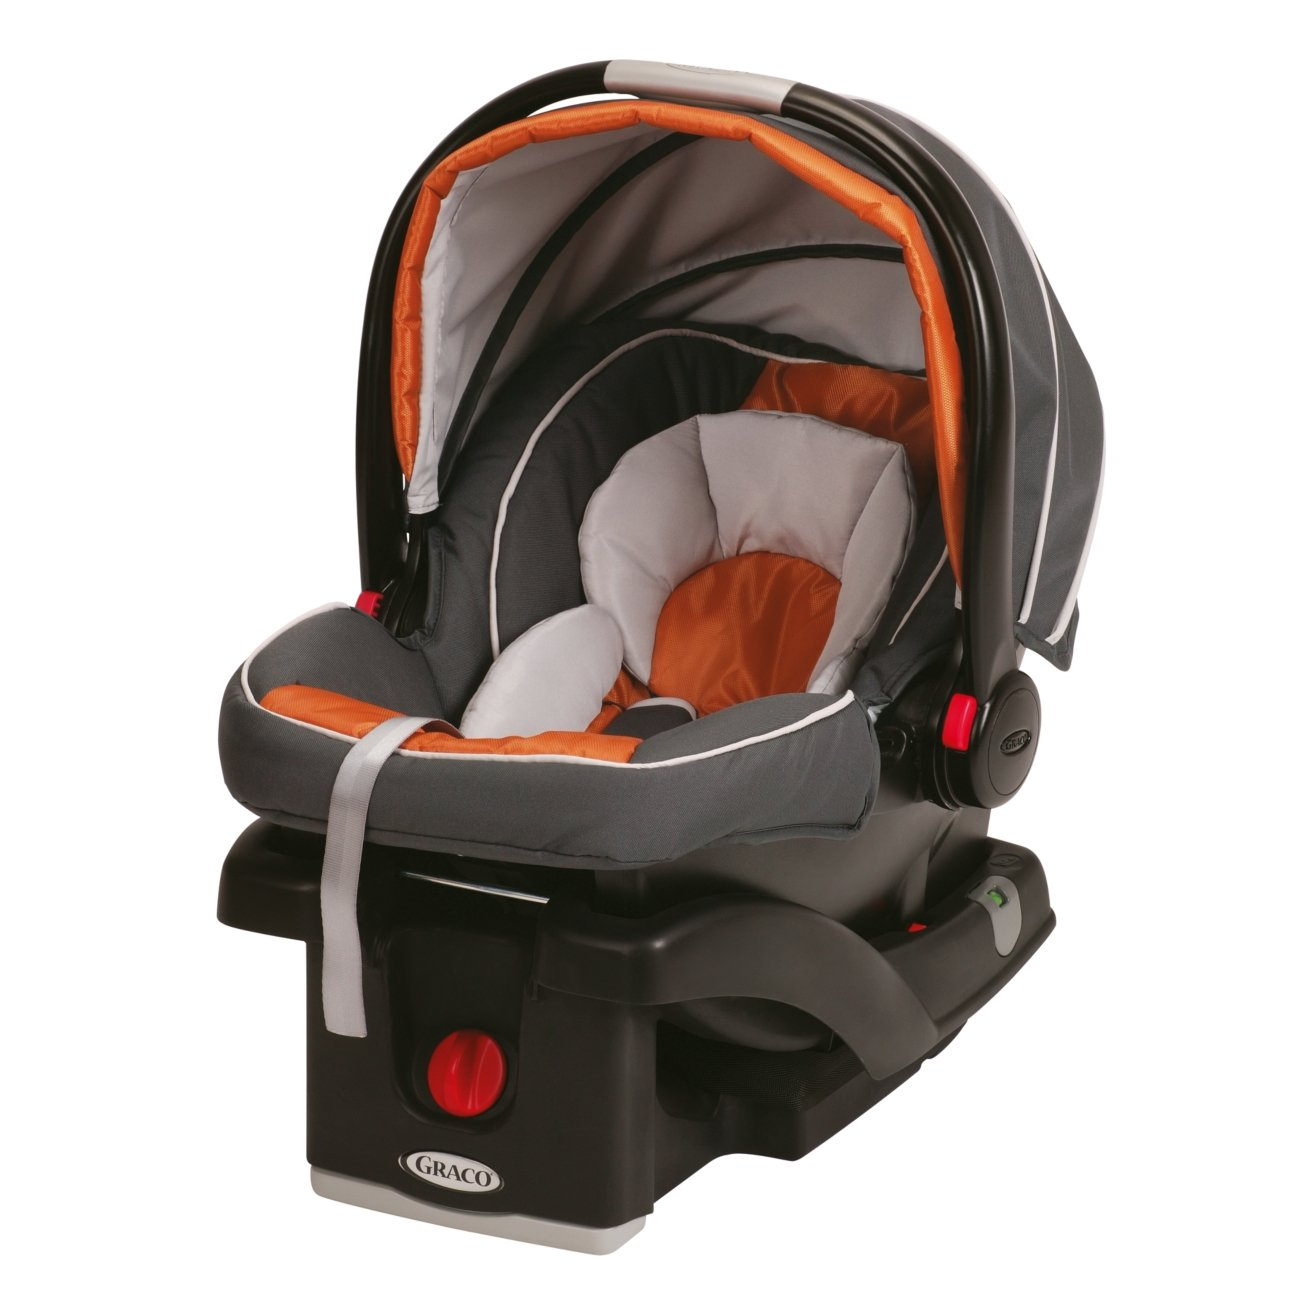 graco snugride click connect 35 car seat gotham new free shipping ebay. Black Bedroom Furniture Sets. Home Design Ideas